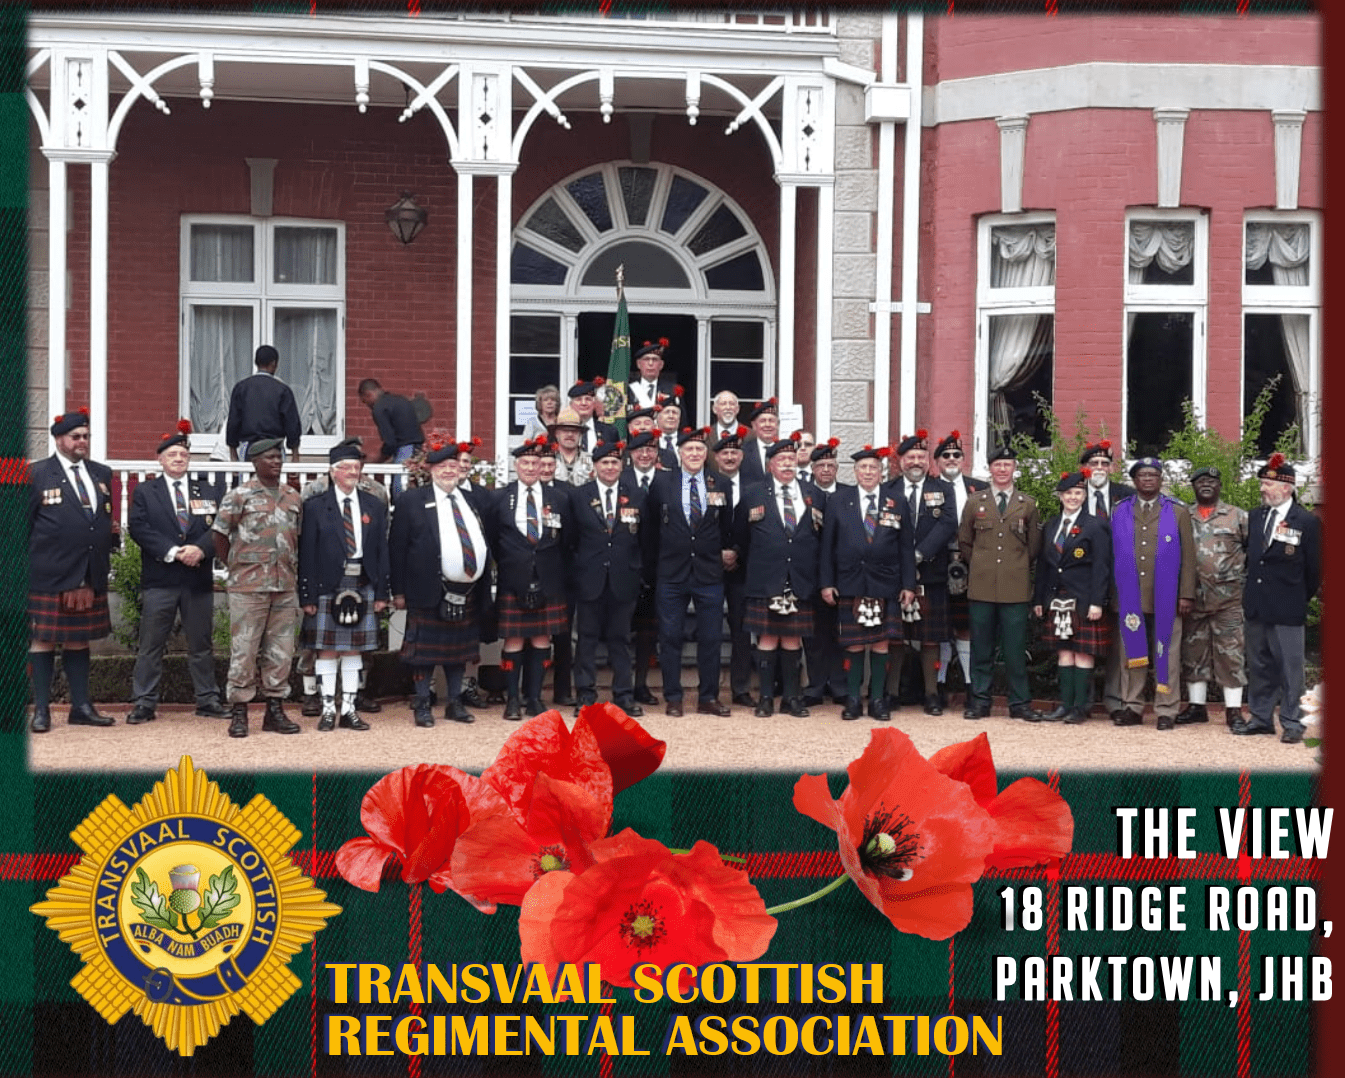 The Transvaal Scottish Regimental Association